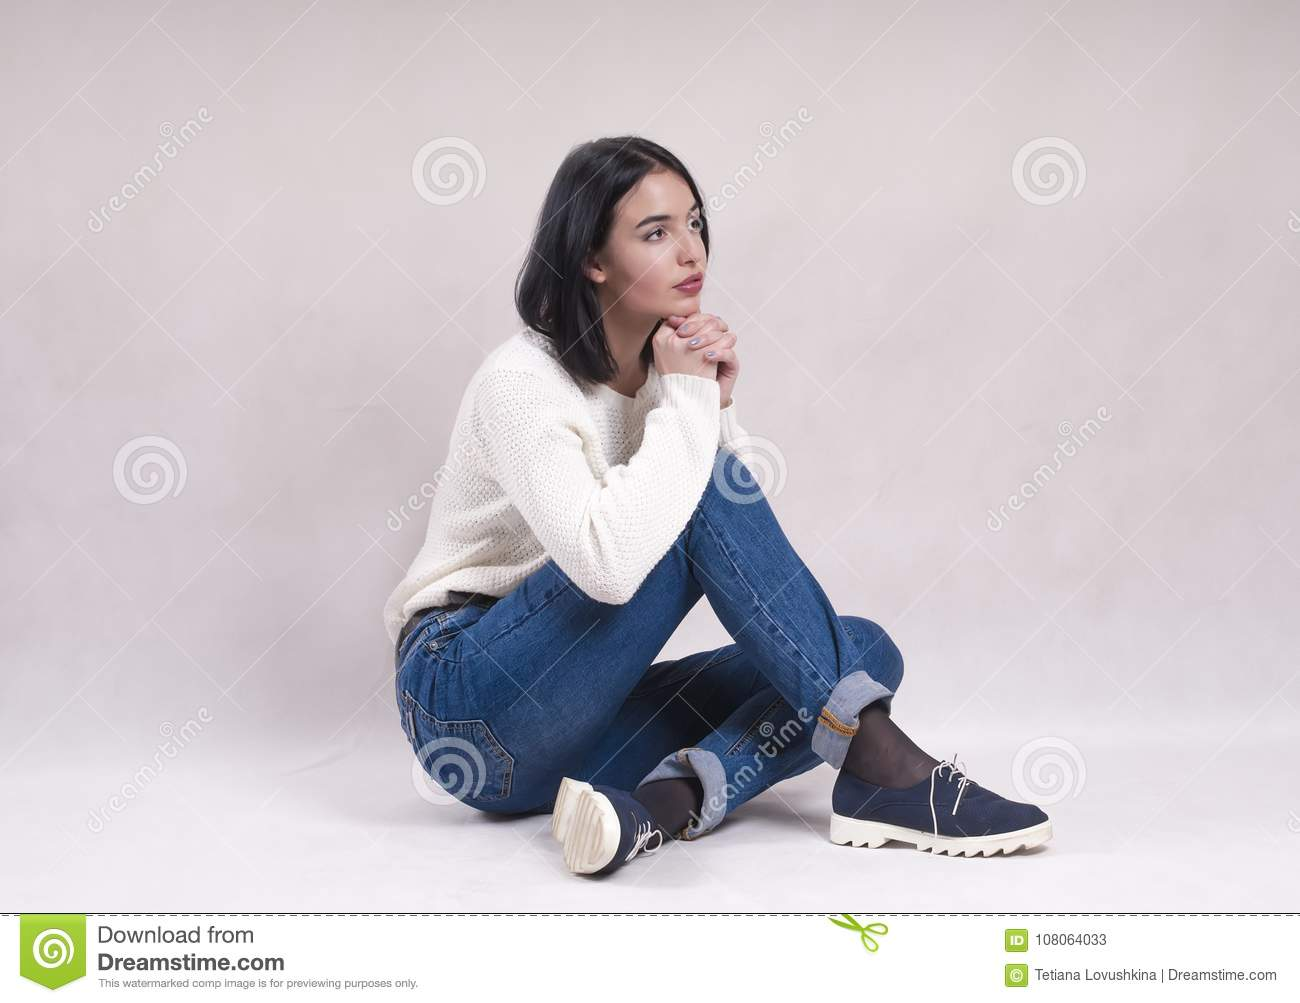 Sad girl sits on the floor in jeans news depression solitude difficulties